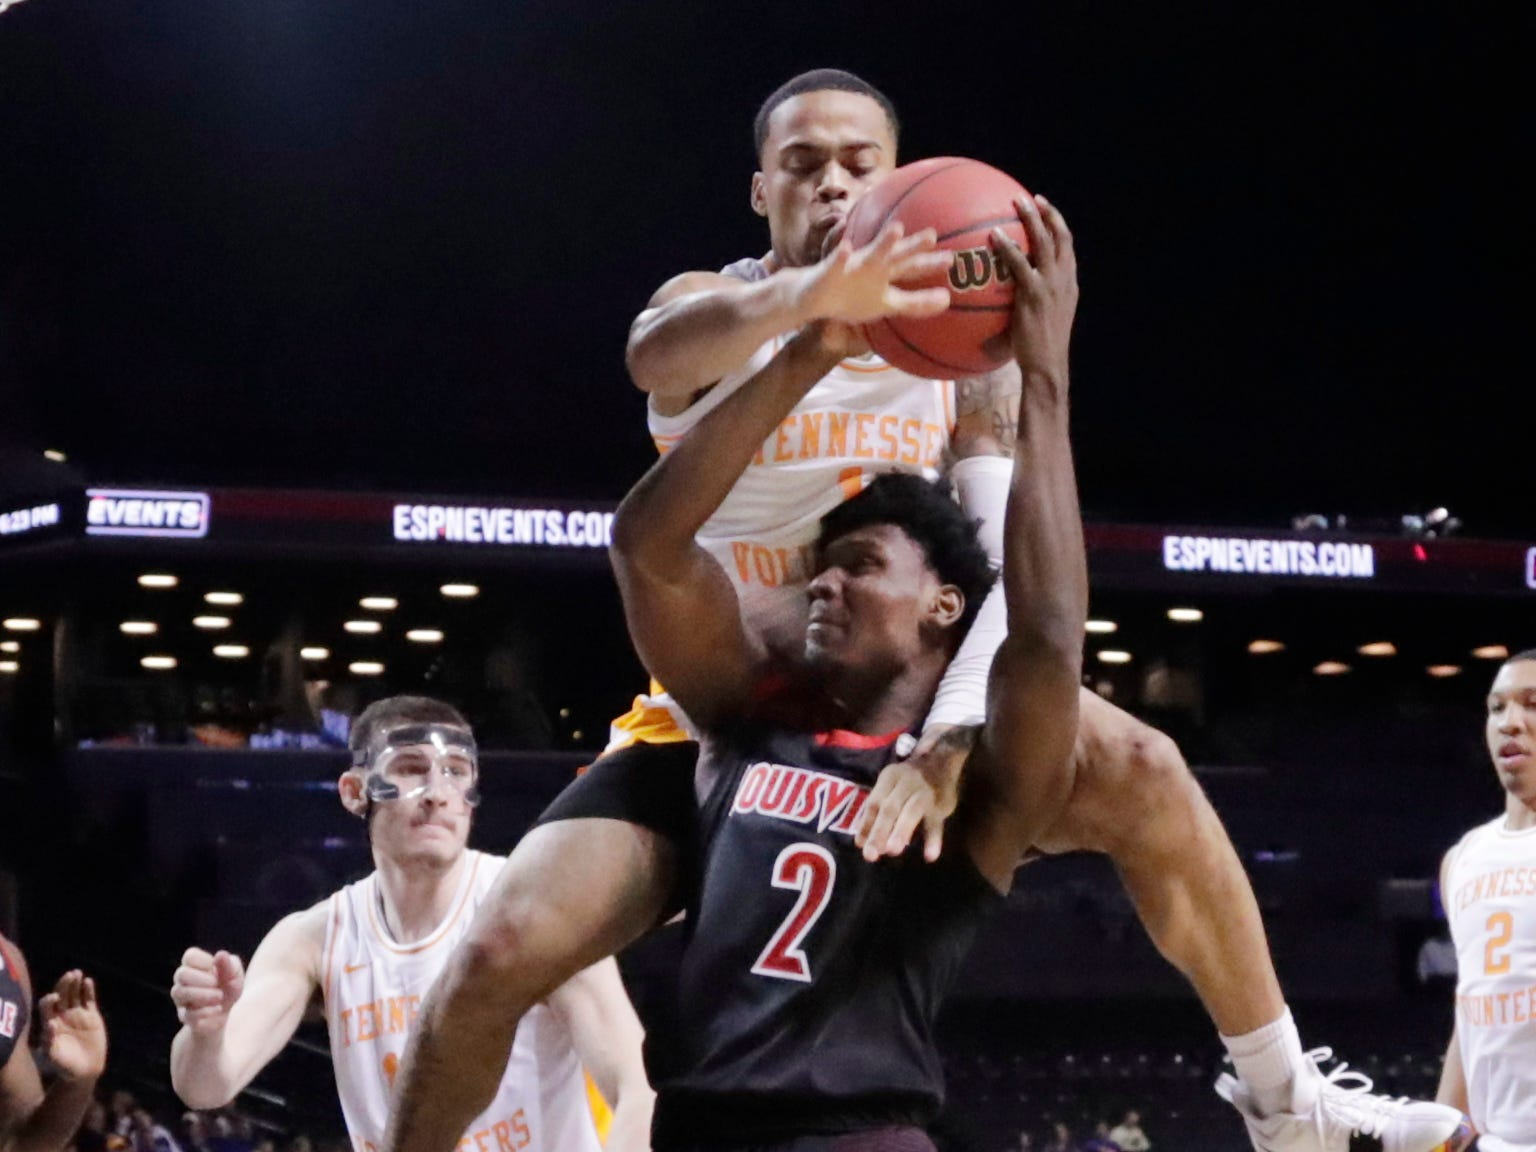 Tennessee's Lamonte Turner (1) defends Louisville's Darius Perry (2) during the second half of an NCAA college basketball game in the NIT Season Tip-Off tournament Wednesday, Nov. 21, 2018, in New York. Tennessee won 92-81. (AP Photo/Frank Franklin II)